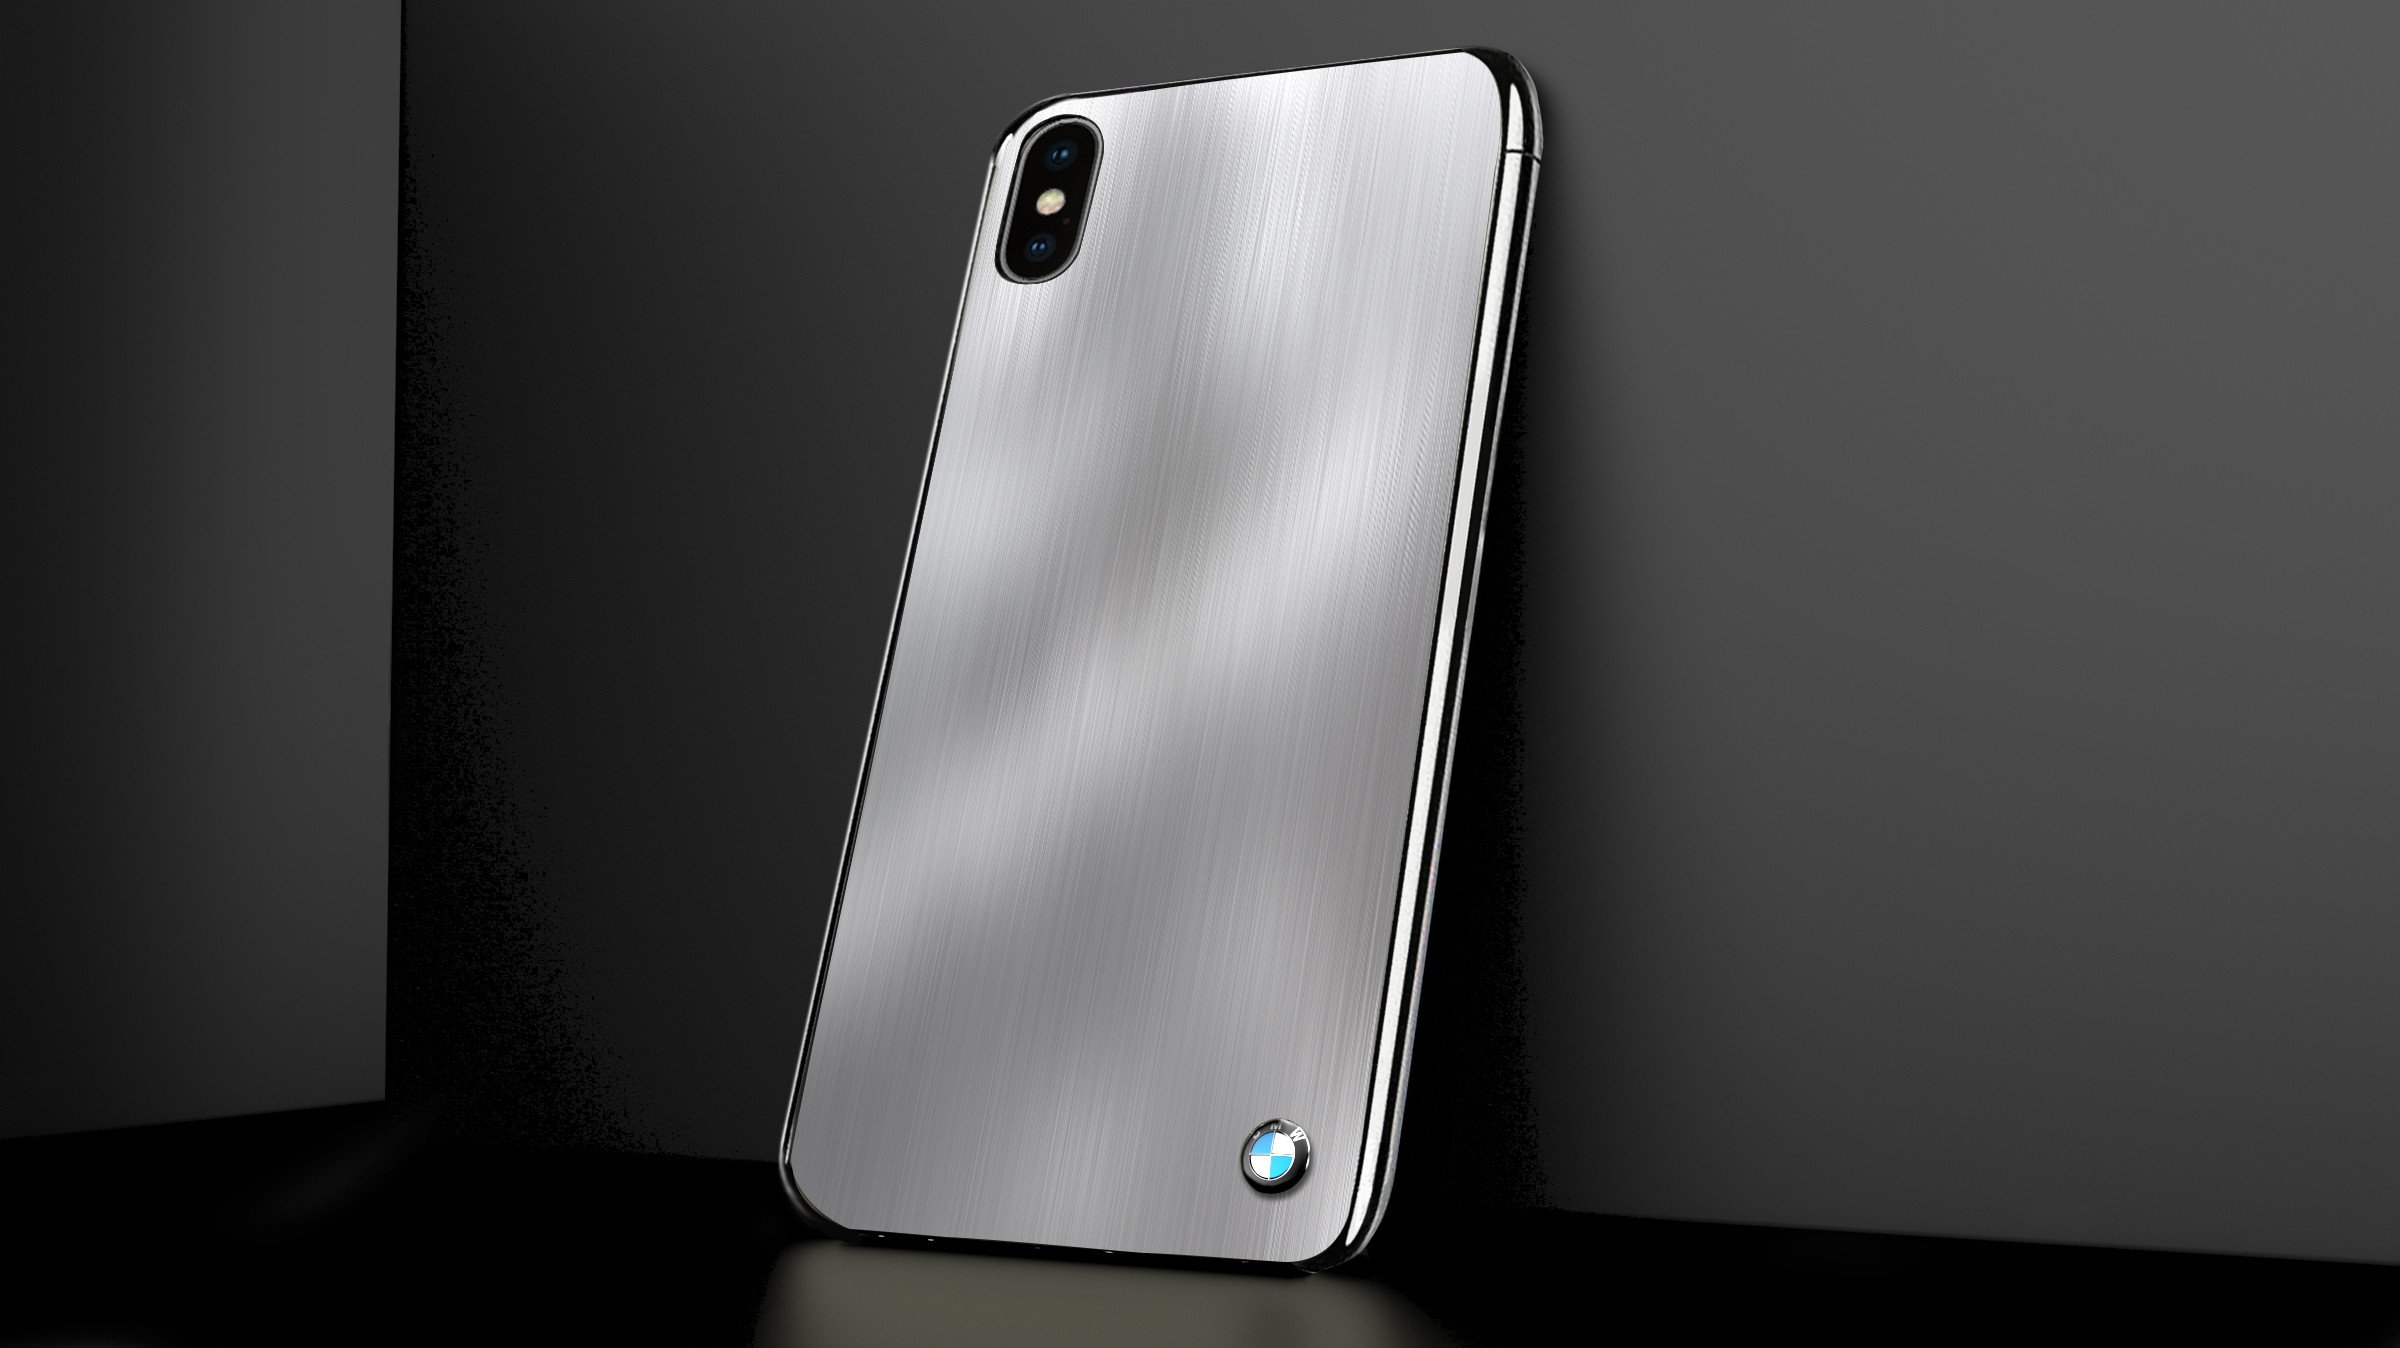 Bmw 174 Apple Iphone X 7 Series Steel Edition Luxurious Metal Case Limited Edition Back Cover